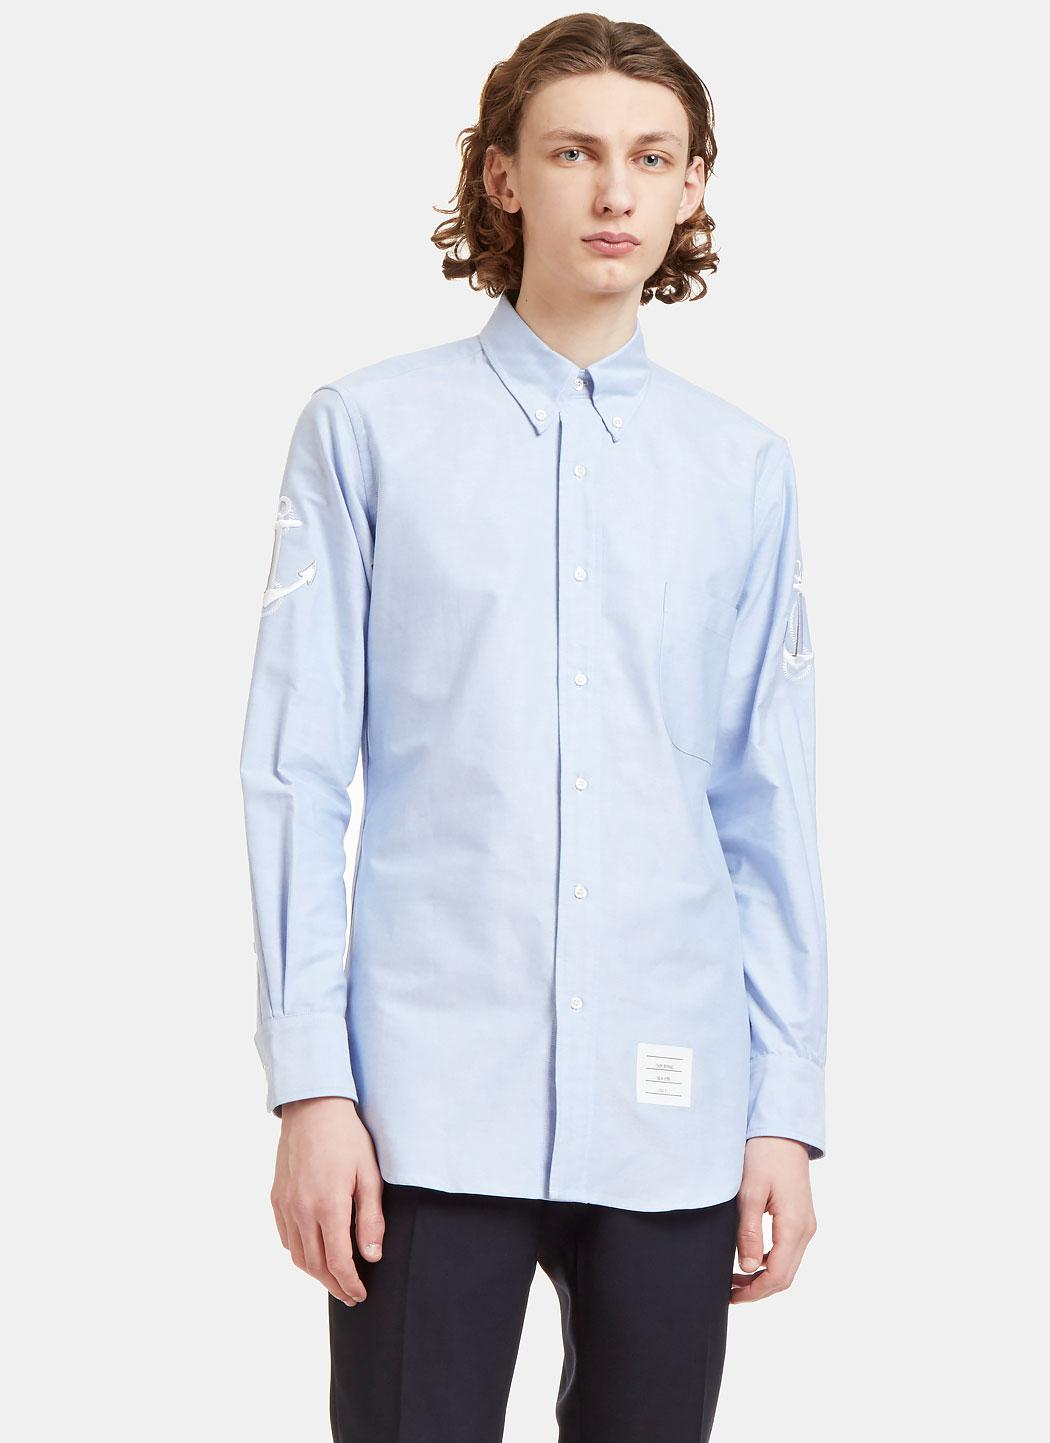 Thom browne men 39 s anchor embroidered oxford shirt in blue for Mens blue oxford shirt